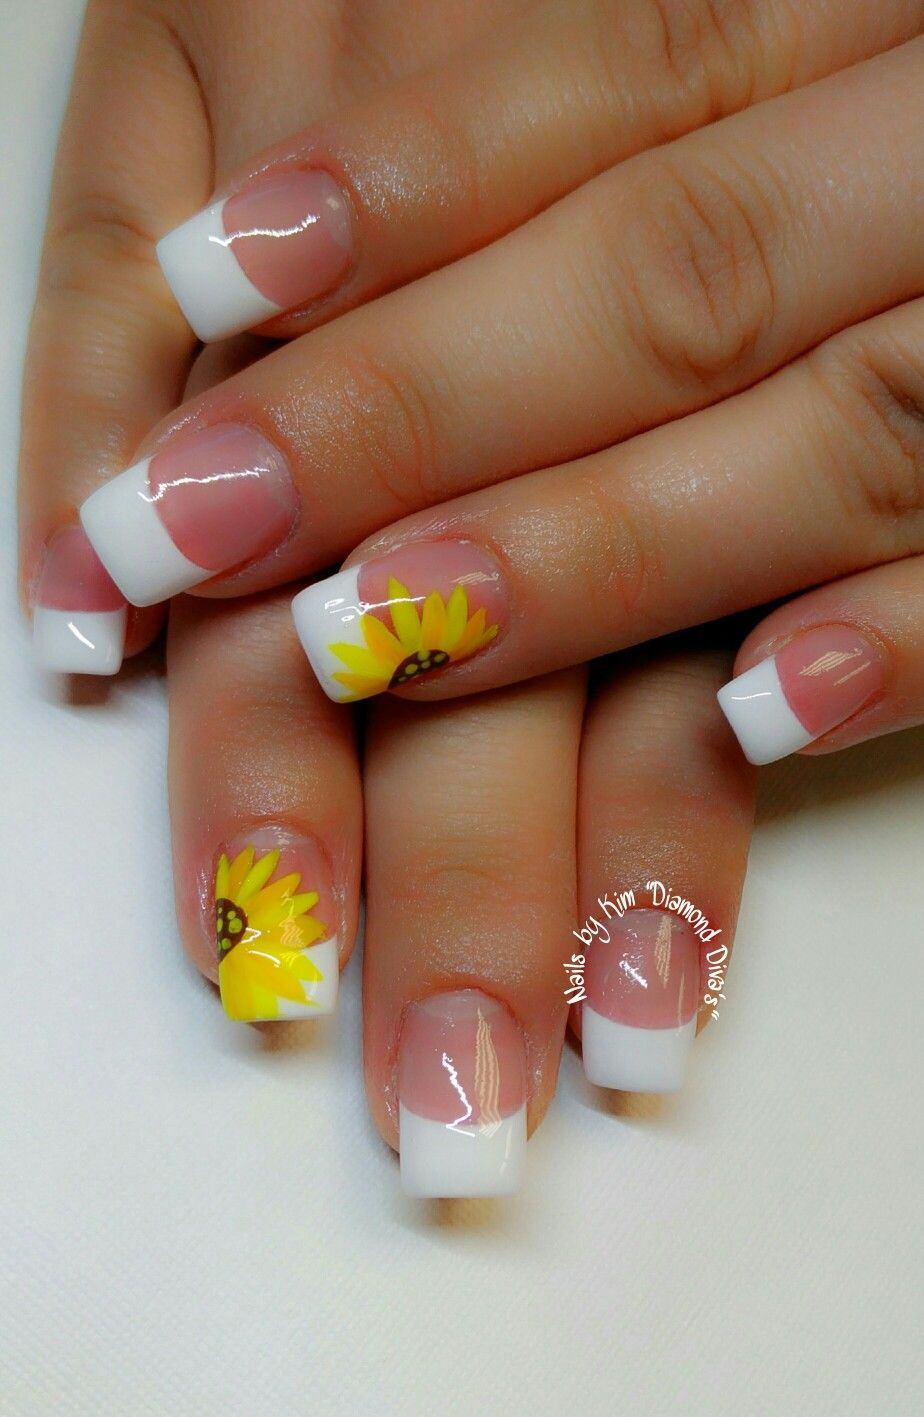 Sunflower nails/ summer nails | Cute Nails Designs | Pinterest | Sunflower  nails, Sunflowers and Summer. - Sunflower Nails/ Summer Nails Cute Nails Designs Pinterest